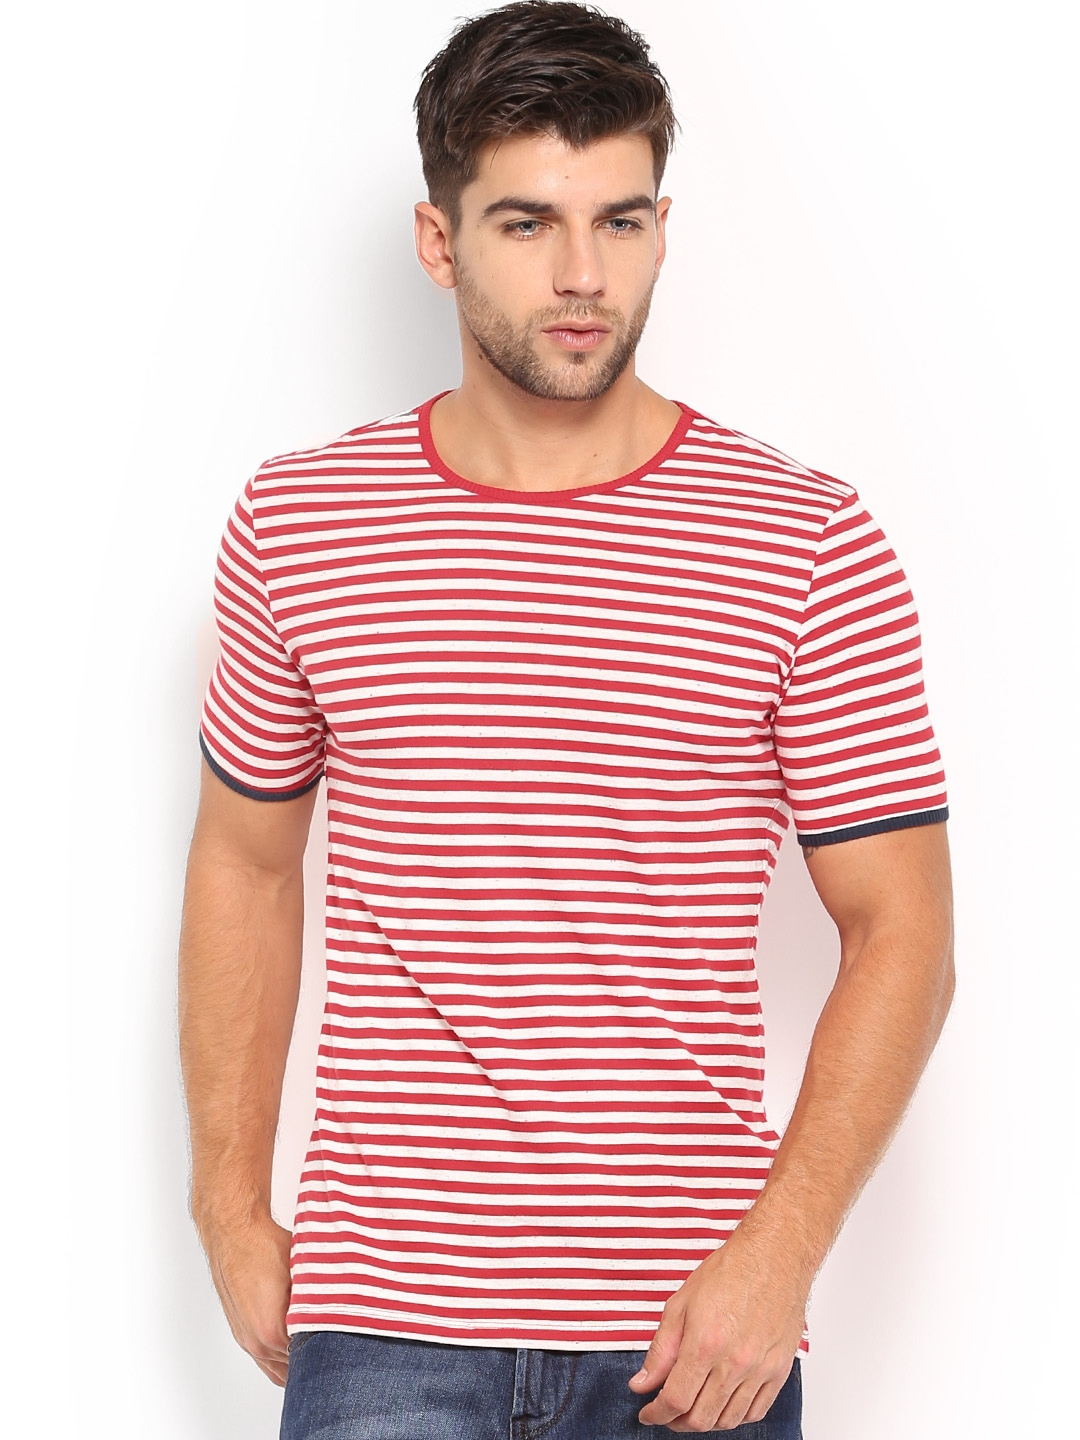 Add a Red And White Striped Shirt to your wardrobe today. A Men's Red And White Striped Shirt, Women's Red And White Striped Shirt and more are available at Macy's.